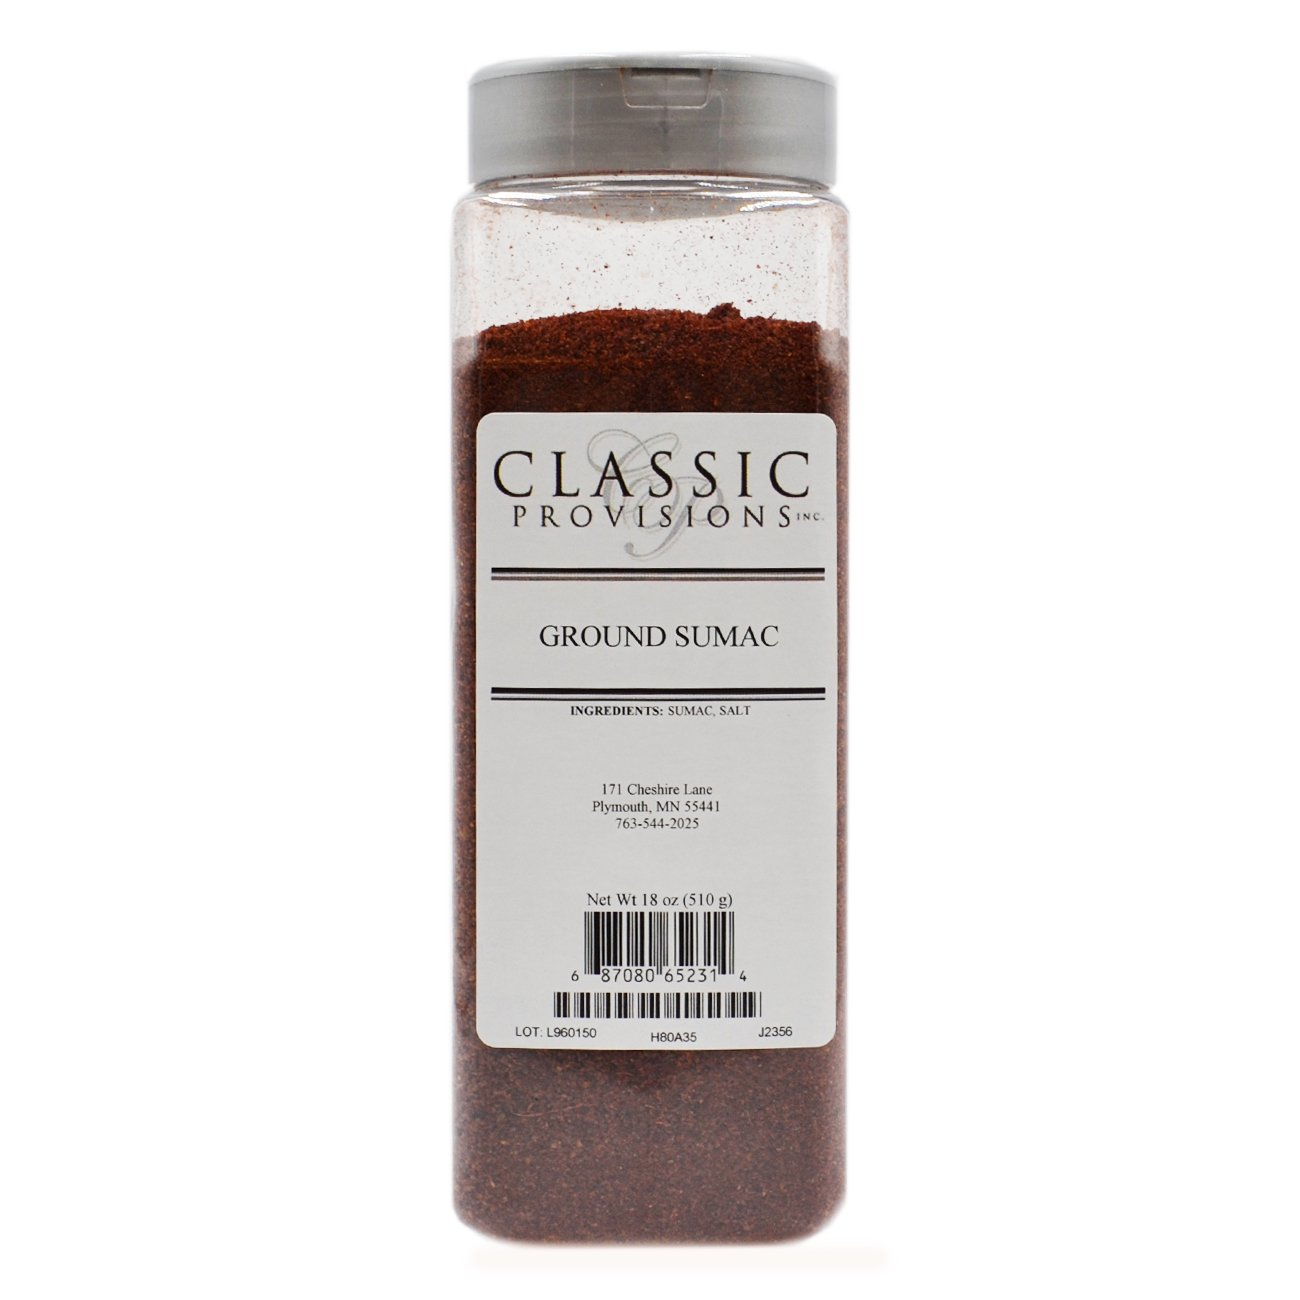 Classic Provisions Spices Ground Sumac, 18 Ounce